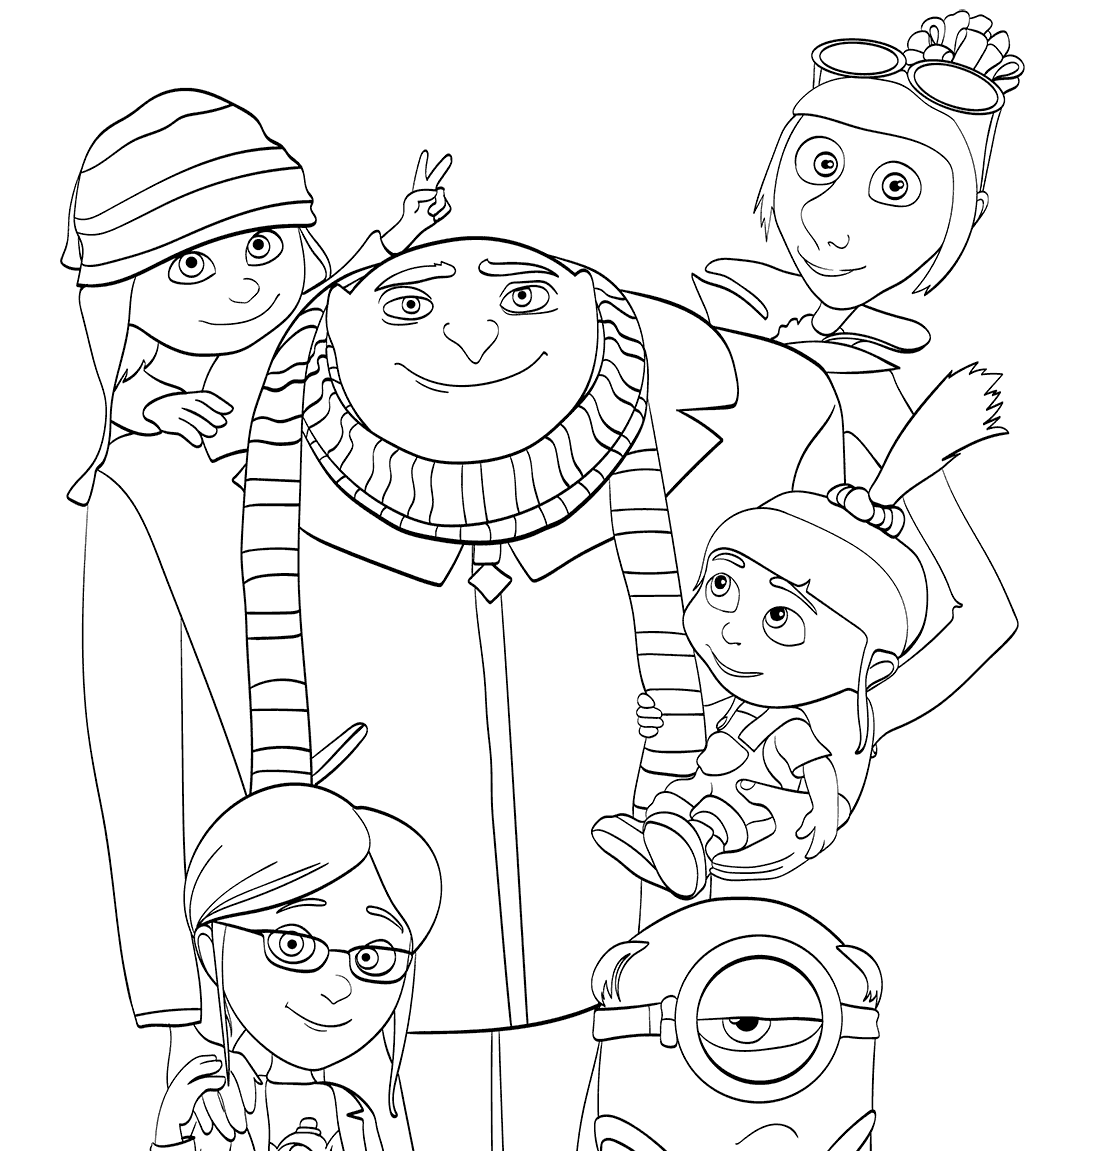 free despicable me coloring pages free printable despicable me coloring pages for kids pages coloring me free despicable